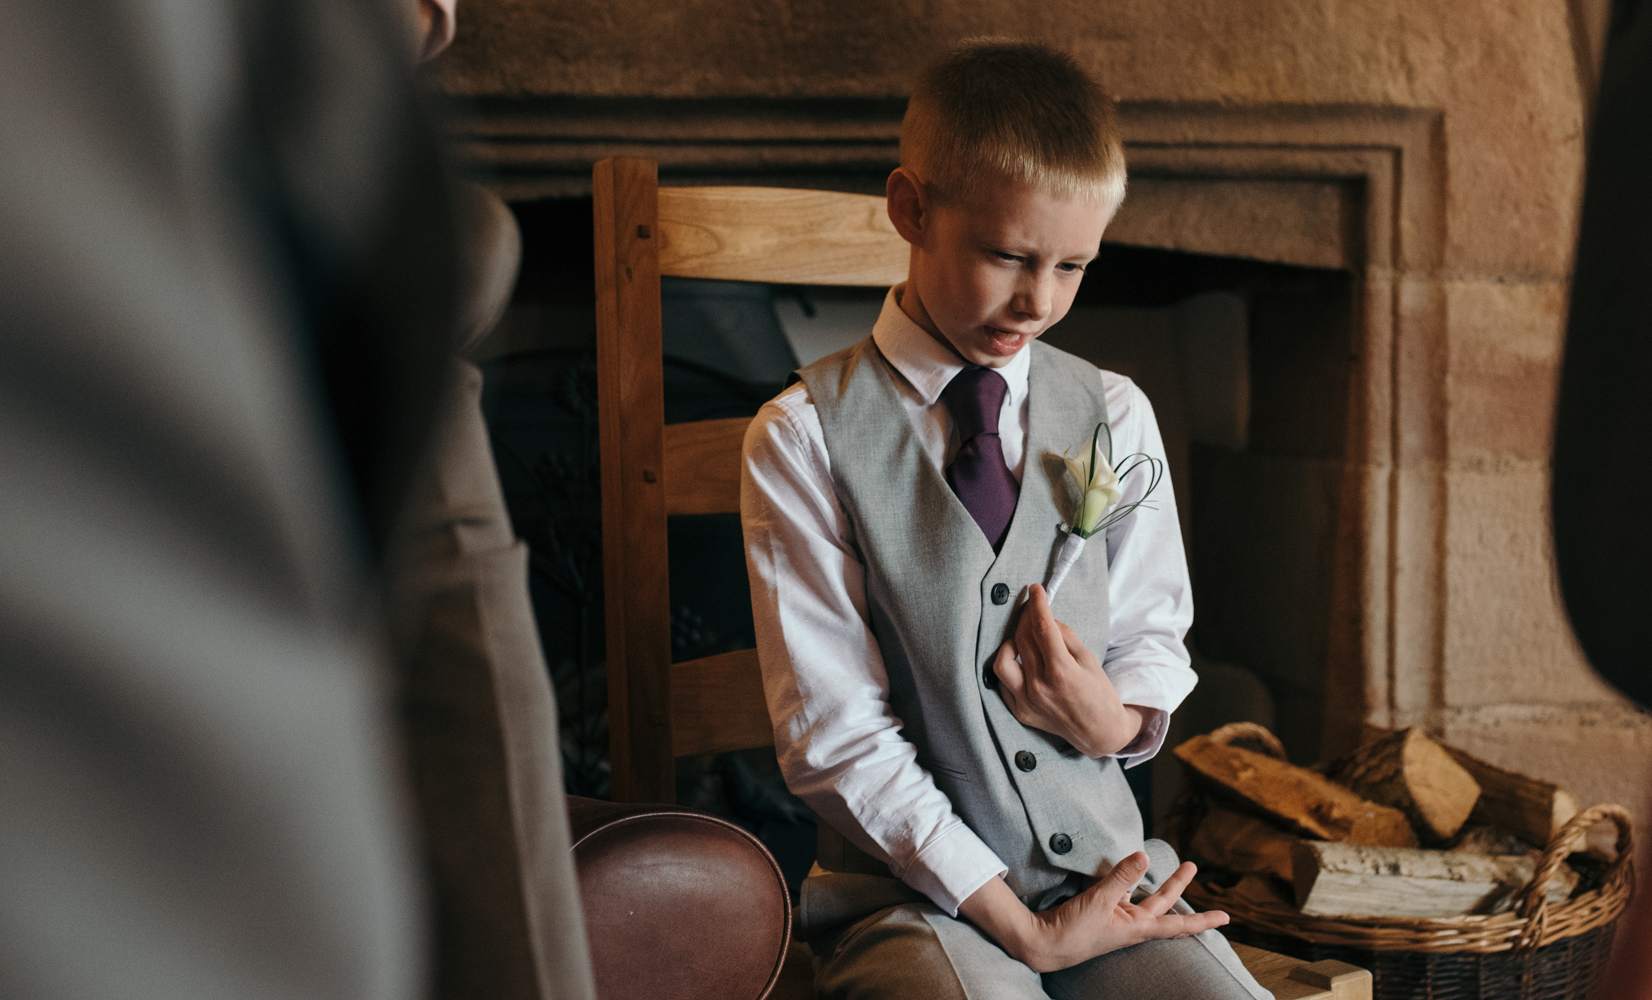 The grooms son sitting enjoying the days events